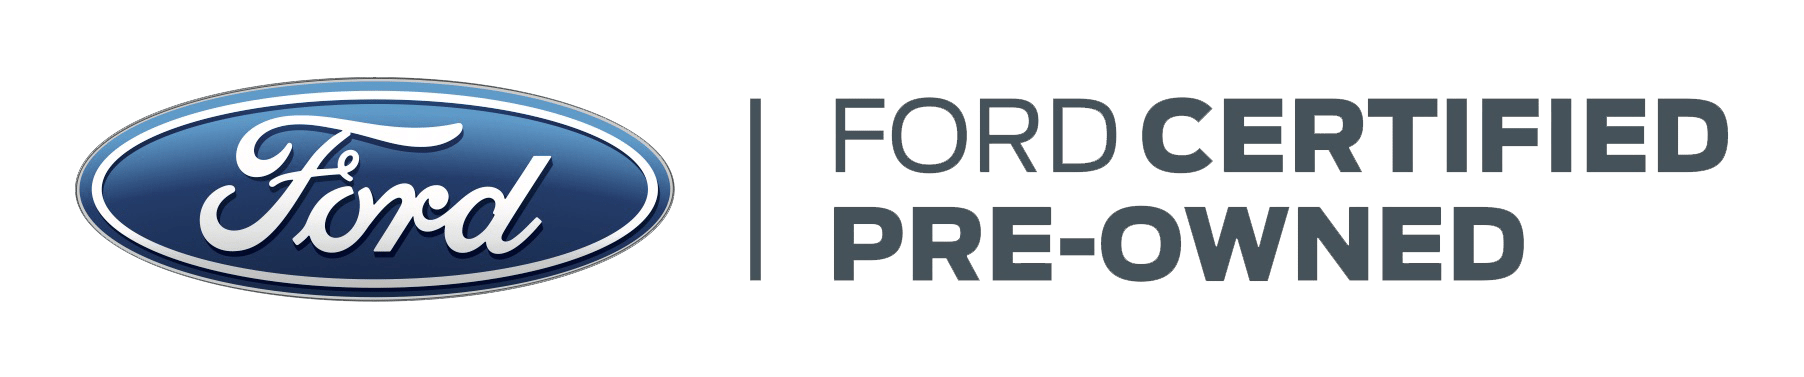 Ford Certified Pre Owned >> Ford Certified Pre Owned Vehicle Benefits Norris Ford Sales